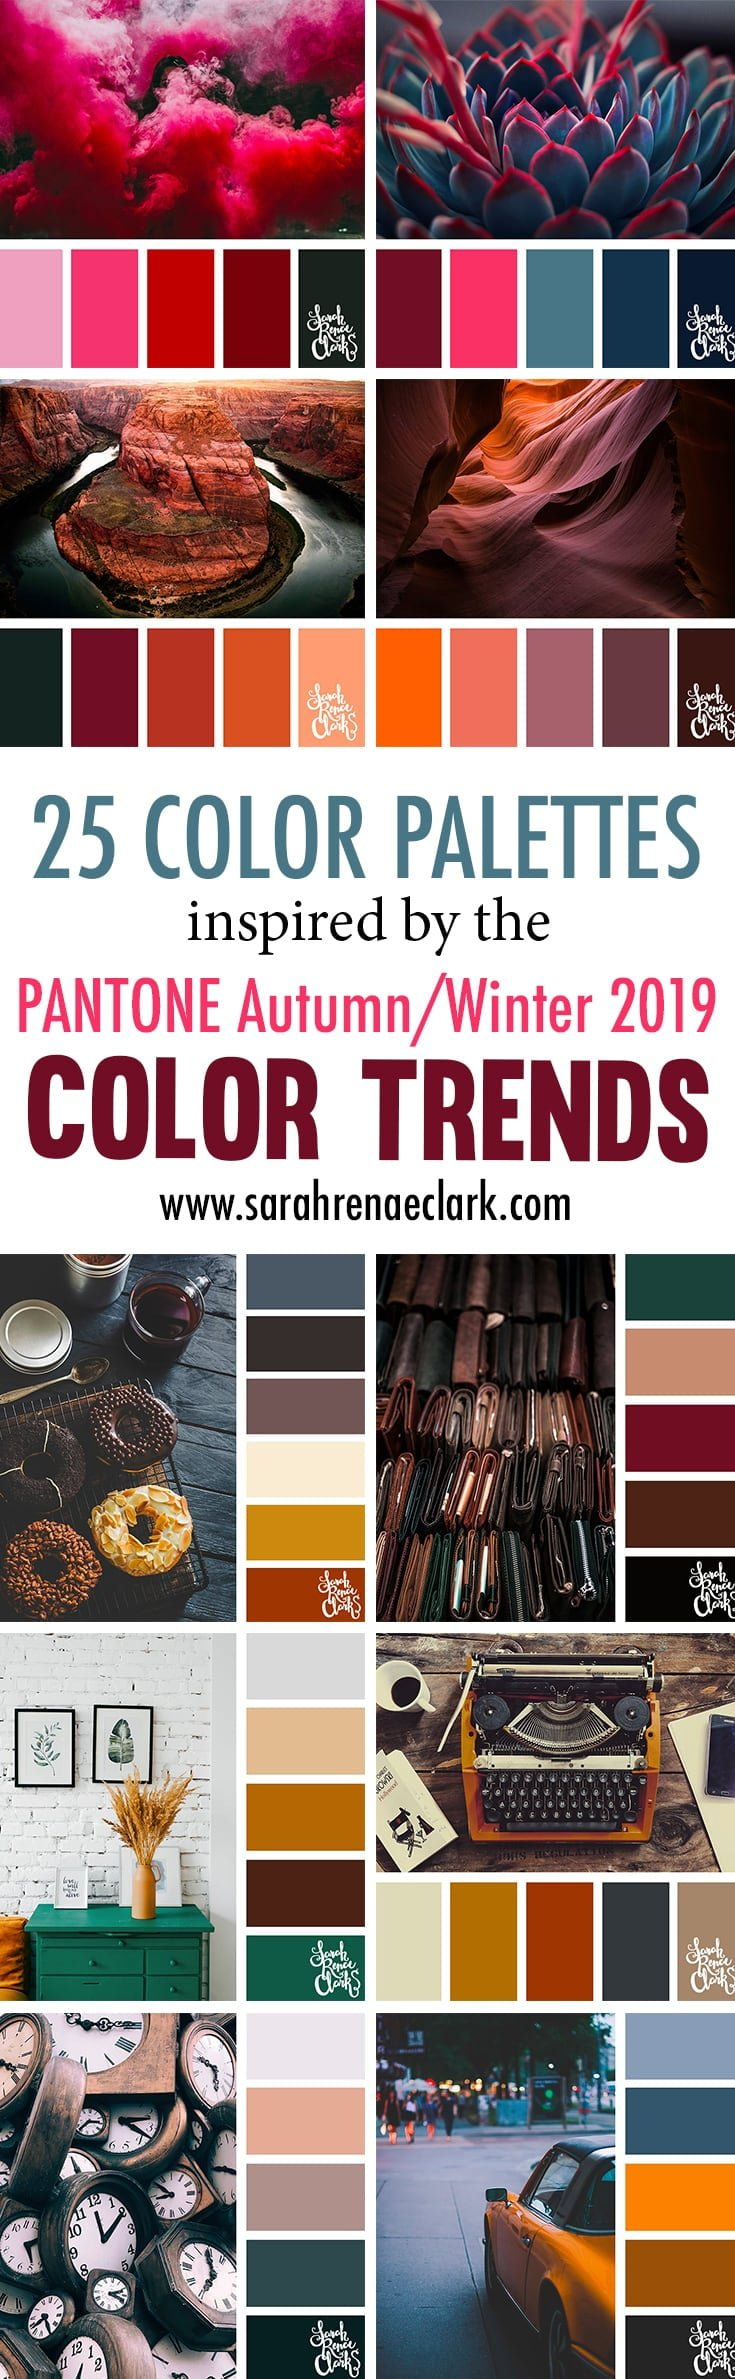 25 Color Palettes Inspired By Pantone Autumn Winter 2019 Color Trends